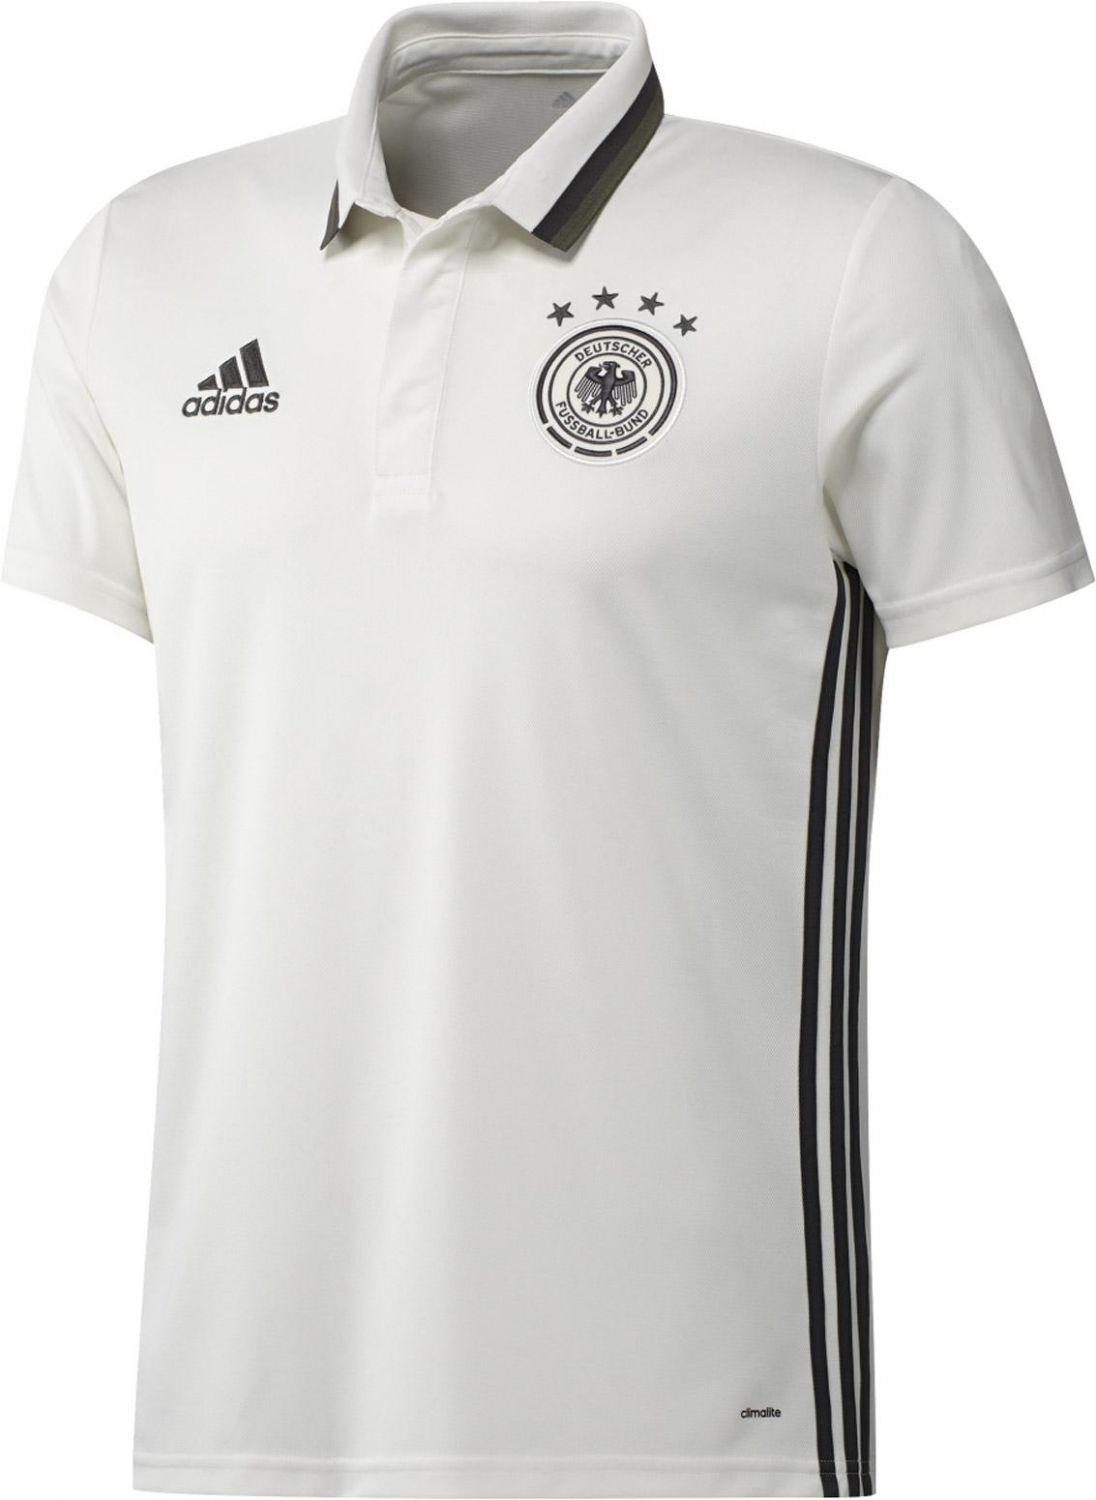 adidas dfb poloshirt em 2016 ebay. Black Bedroom Furniture Sets. Home Design Ideas